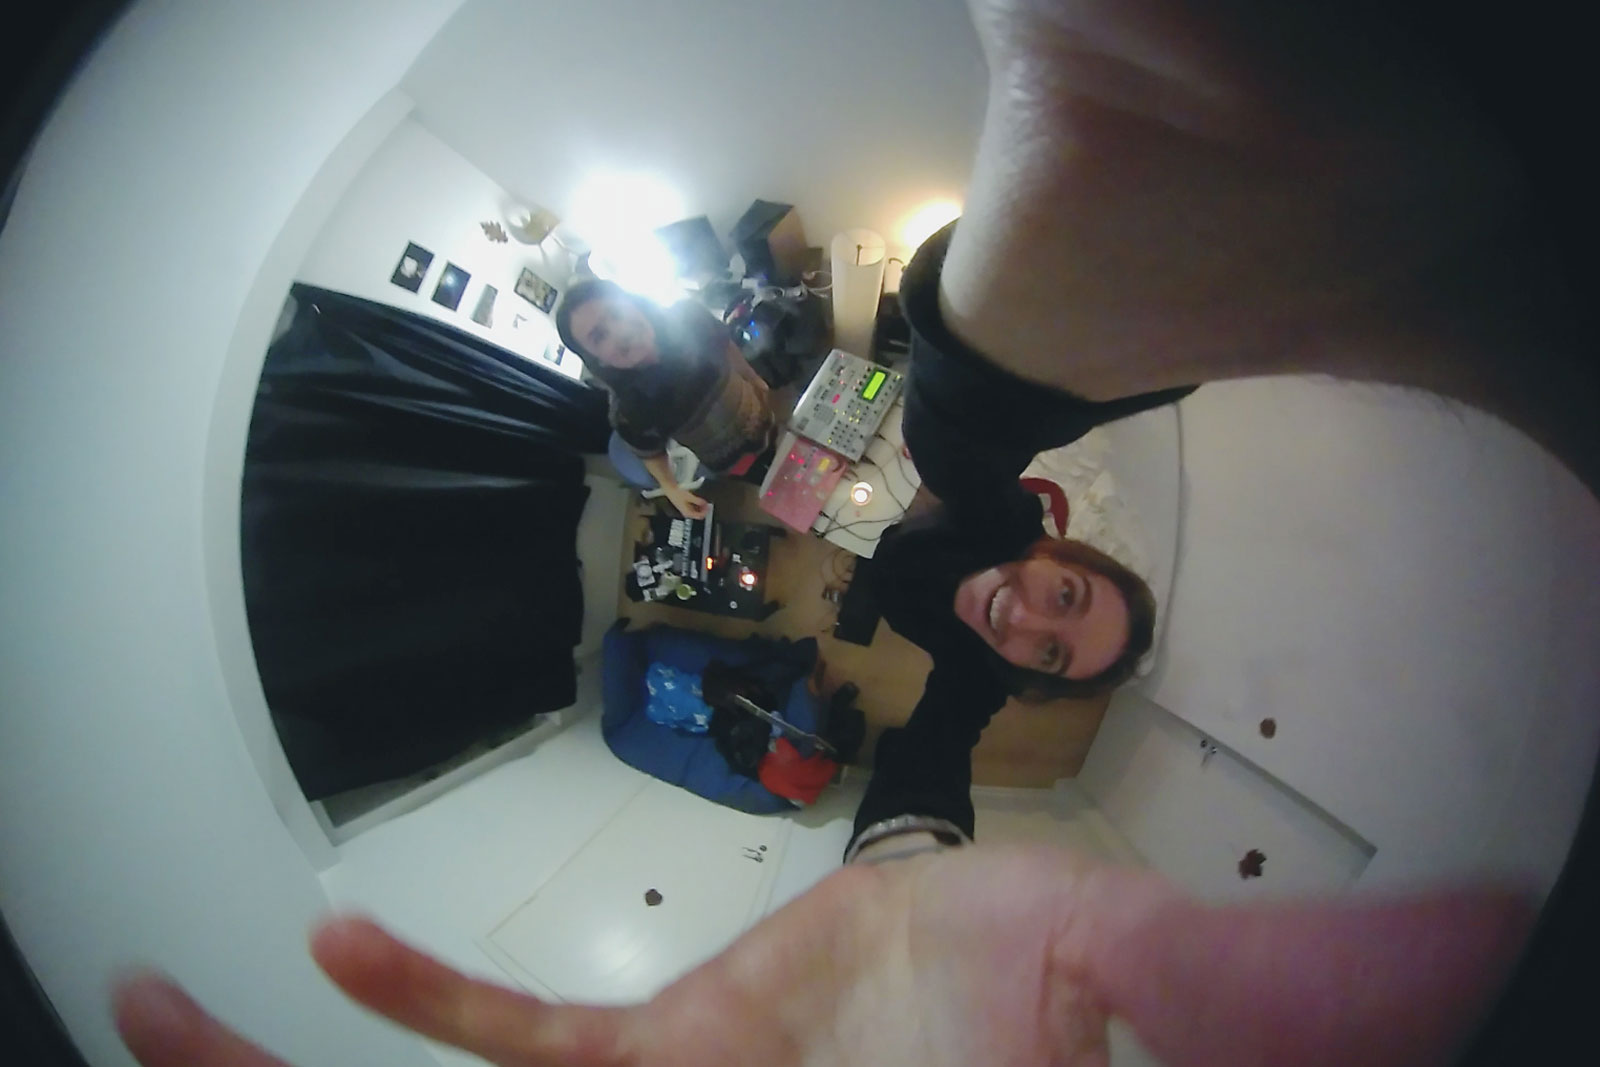 A selfie taken of Unfold Stories' Riccardo and Lucio with a fish-eye lense. They are both smiling, and it seems like the whole room is spinning around them.